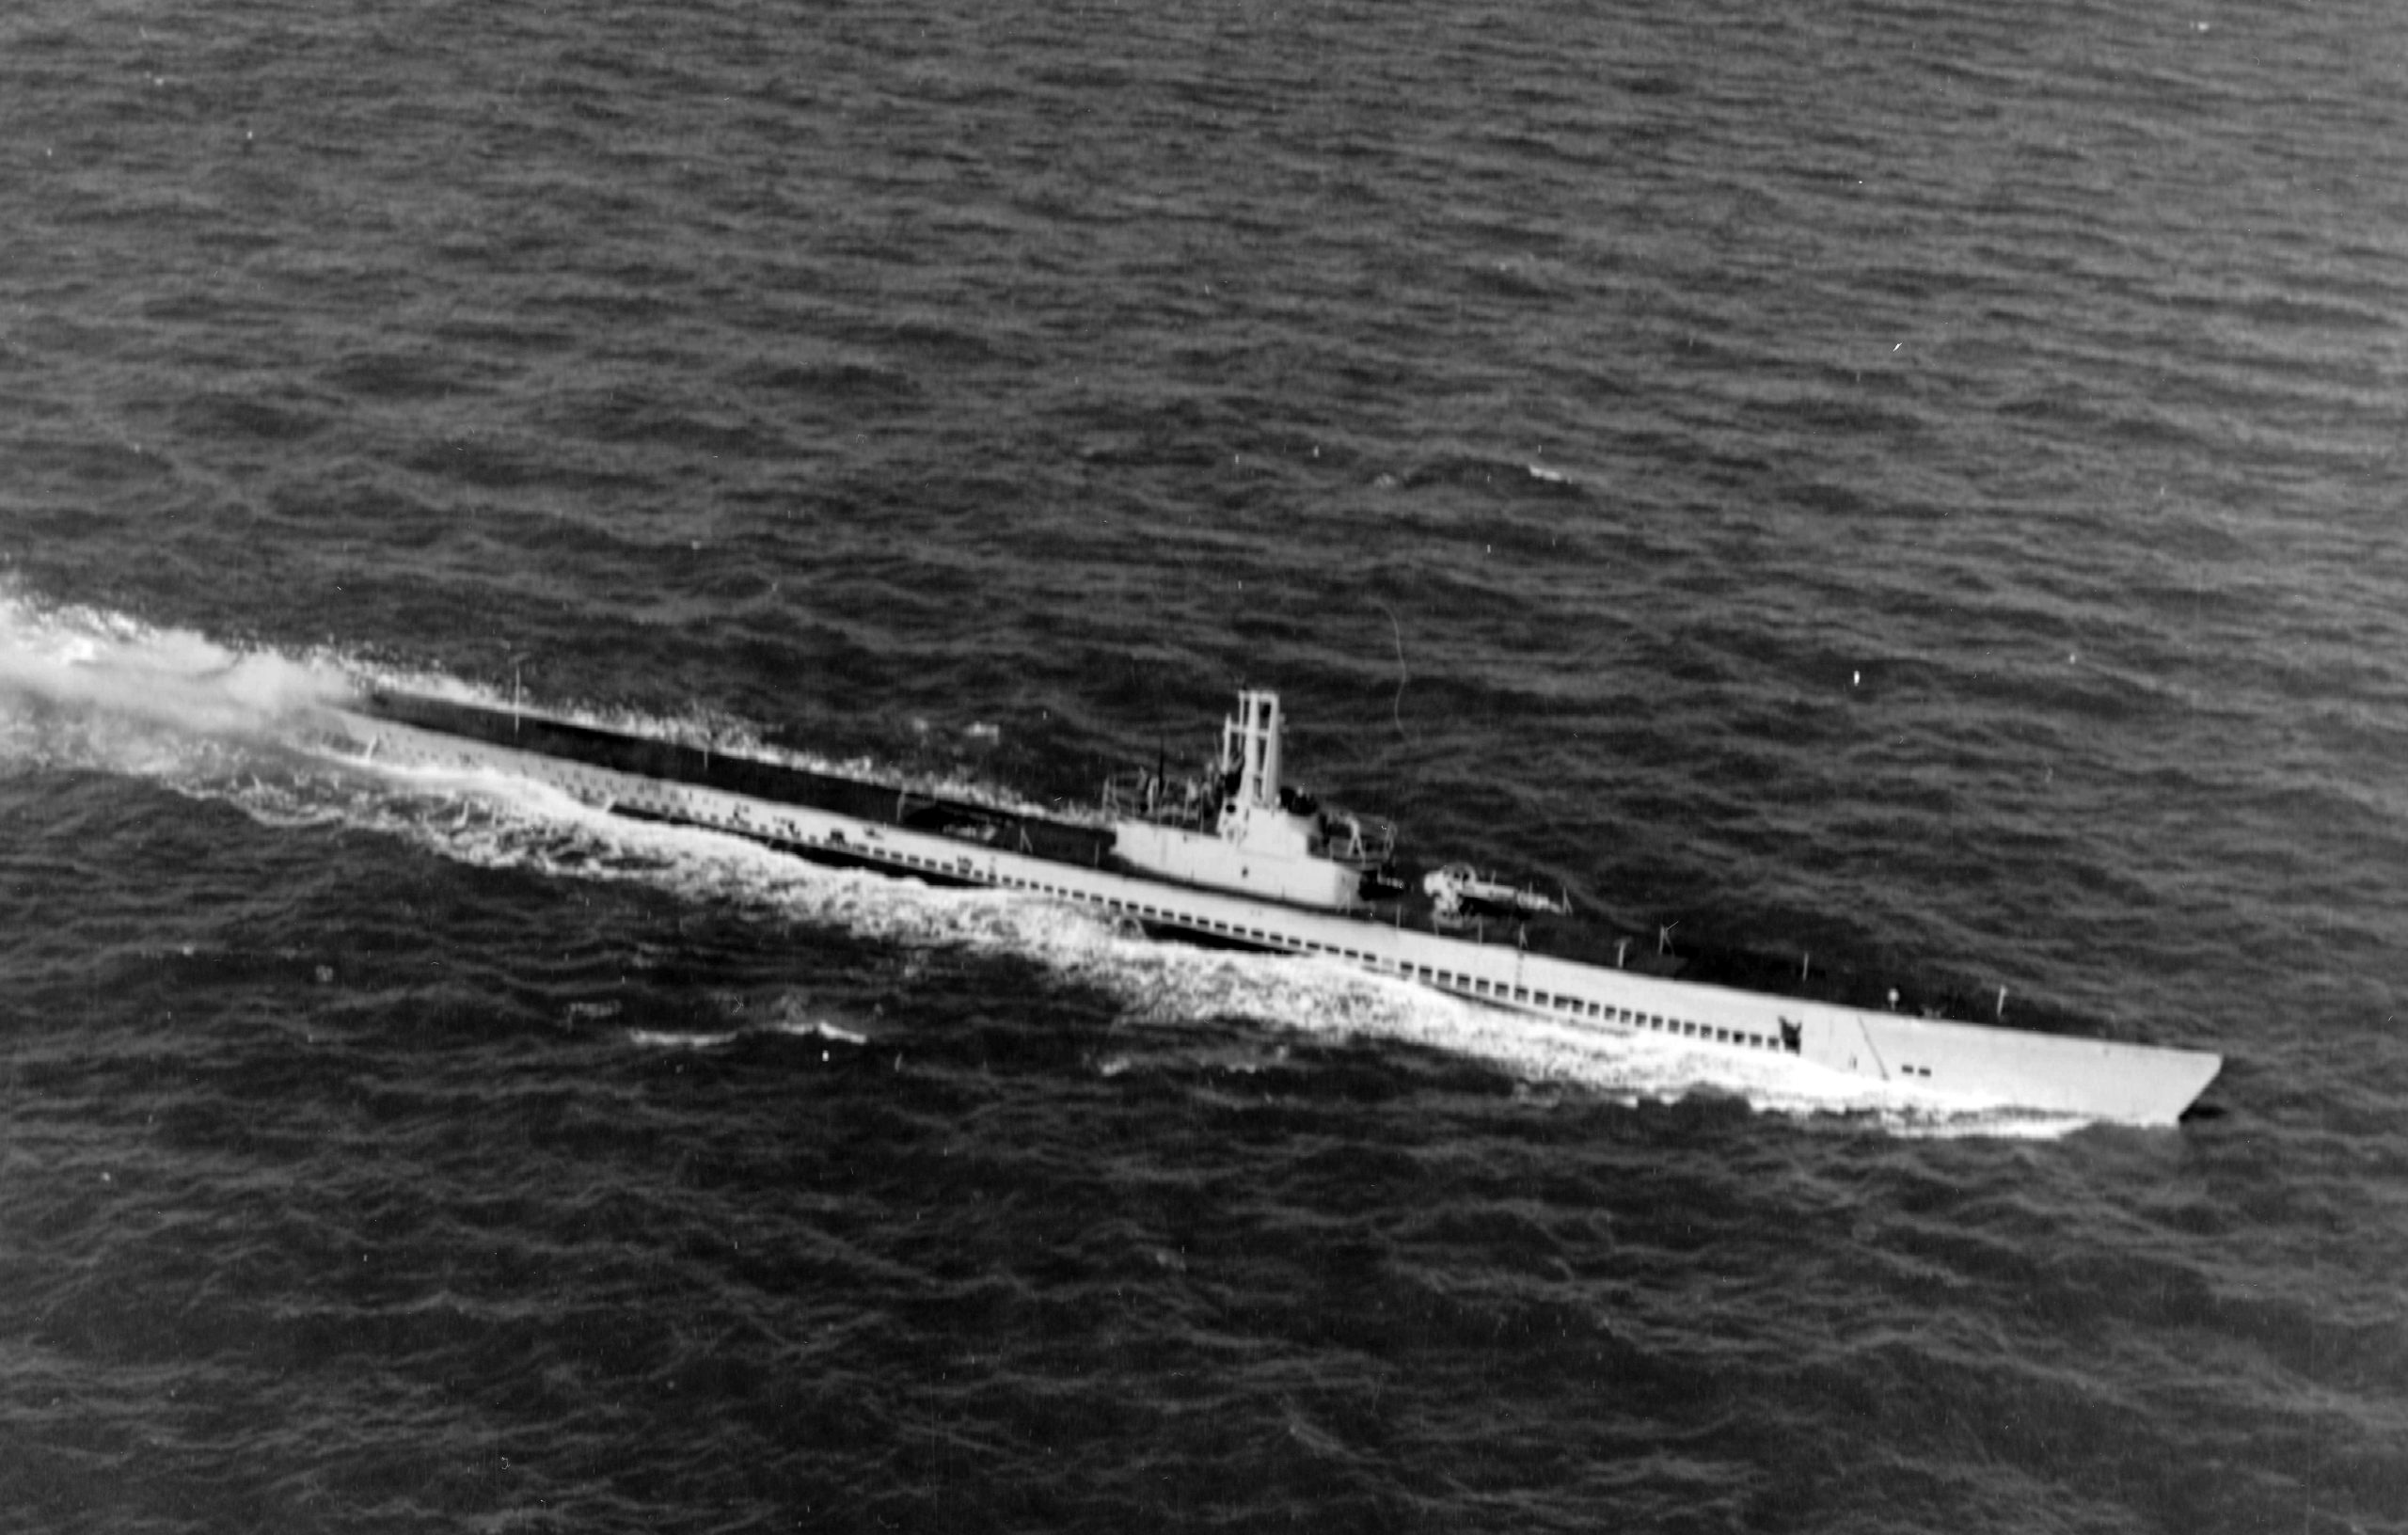 USS Devilfish – The Curious Case of the Only U.S. Navy Submarine to be Attacked by a Kamikaze - MilitaryHistoryNow.com